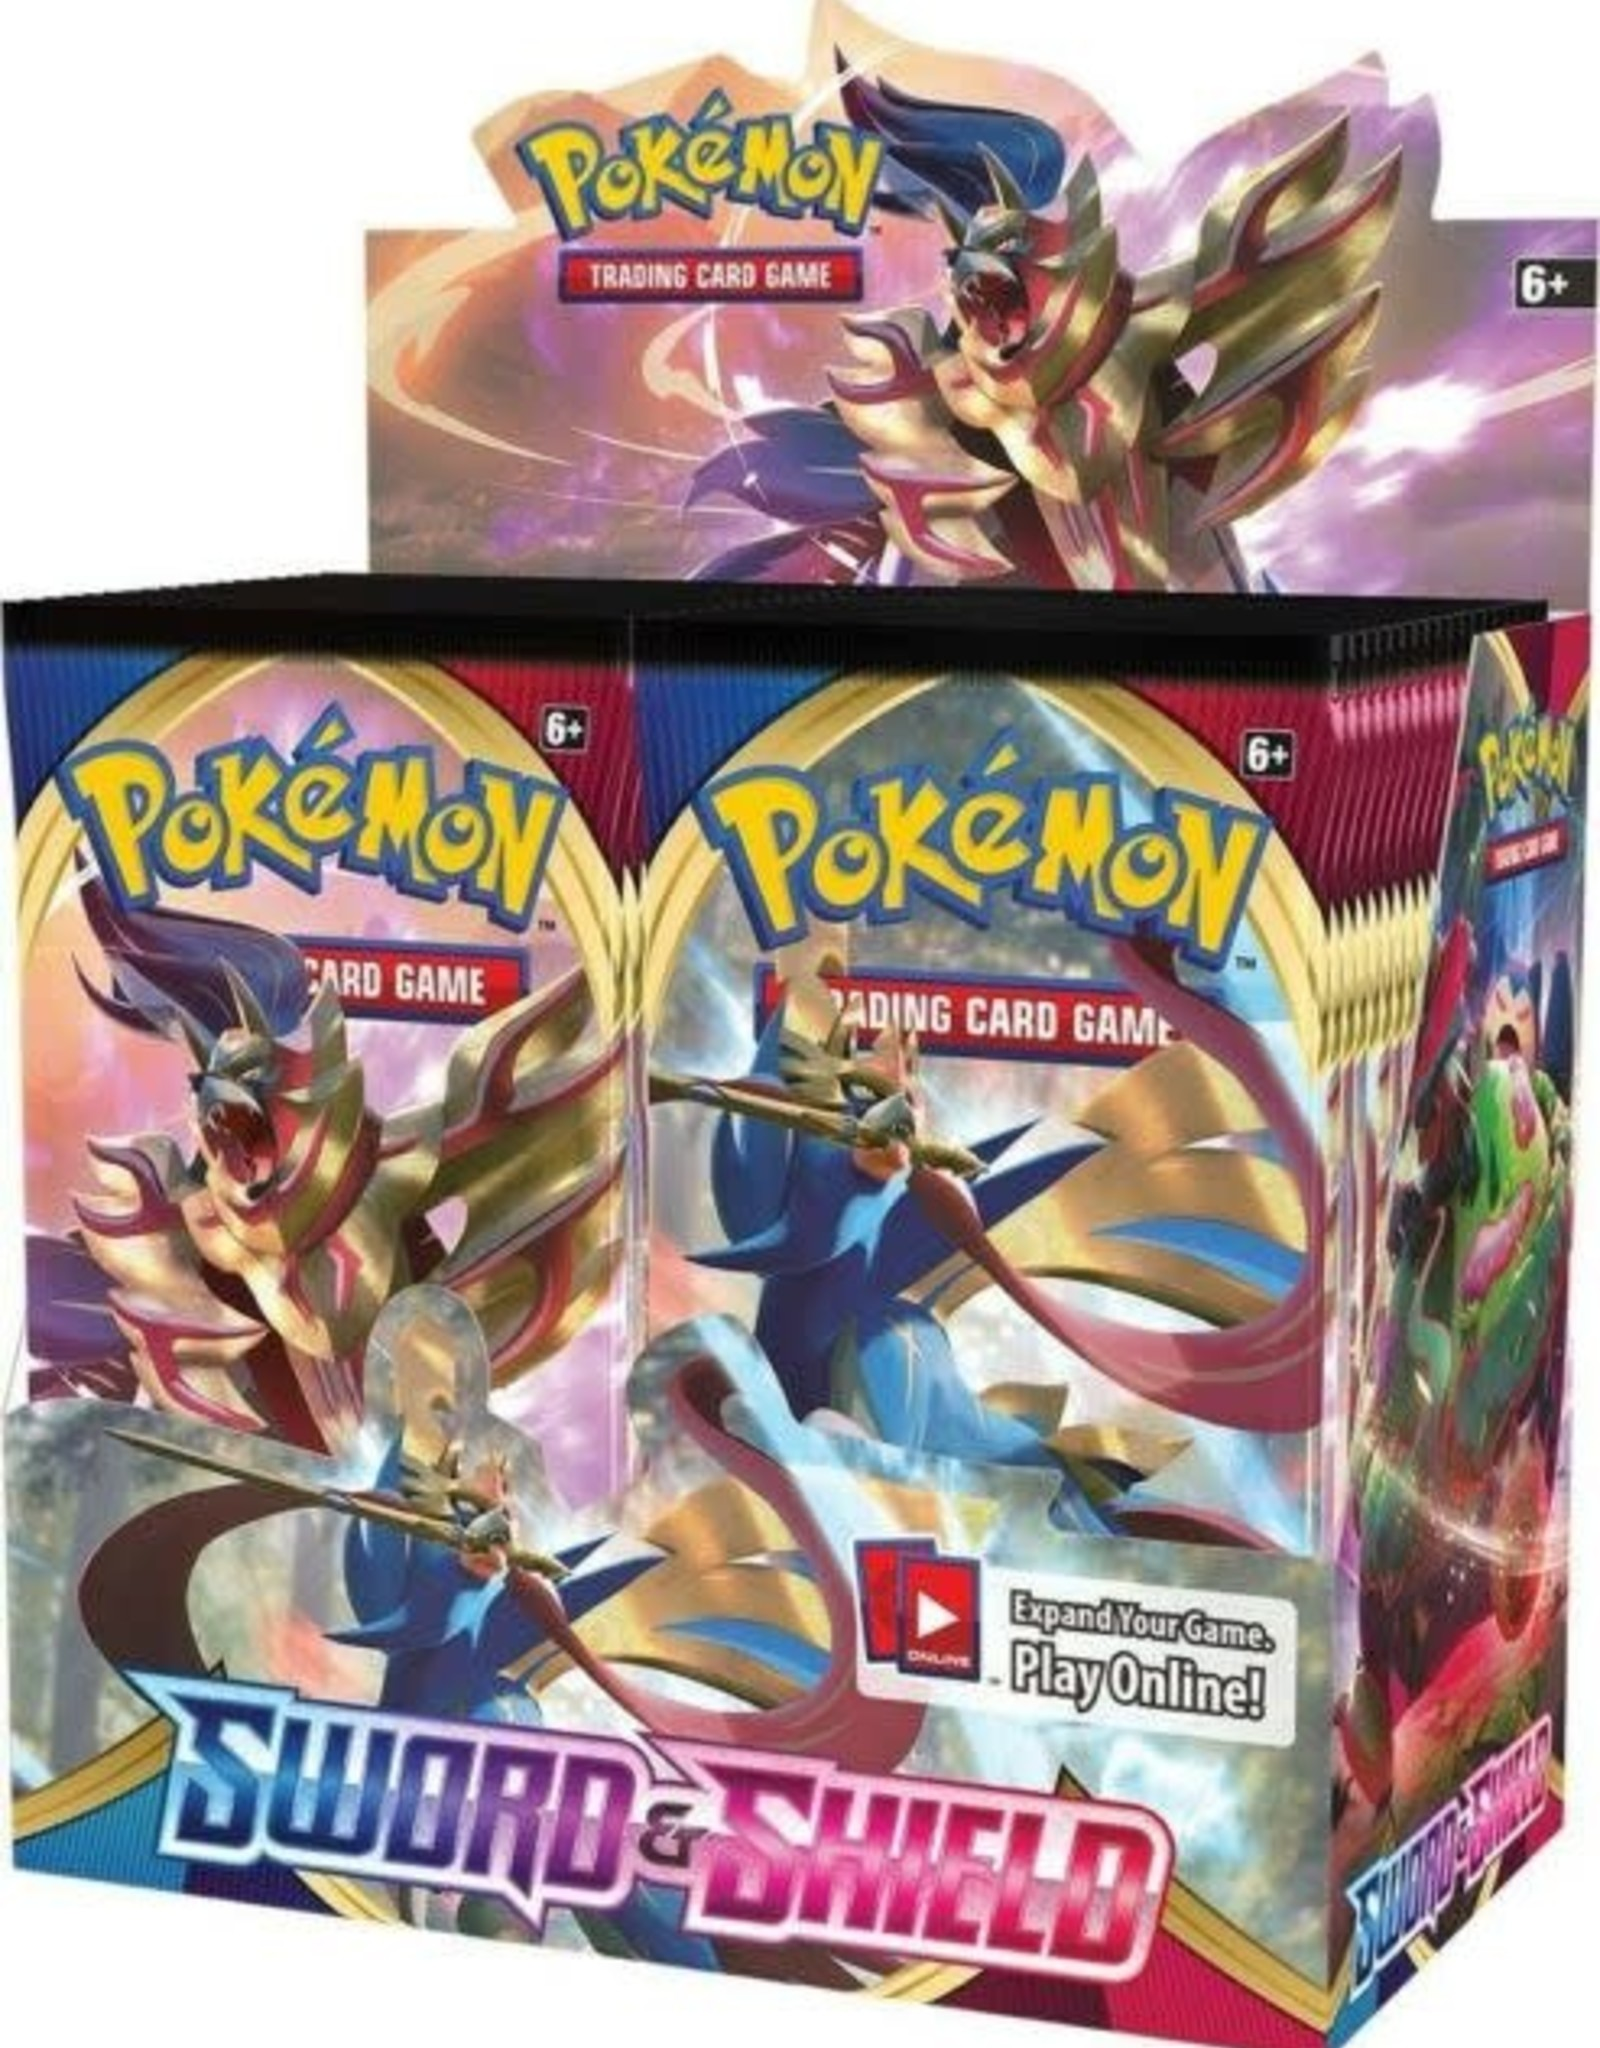 Pokemon Pokemon Sword & Shield Box